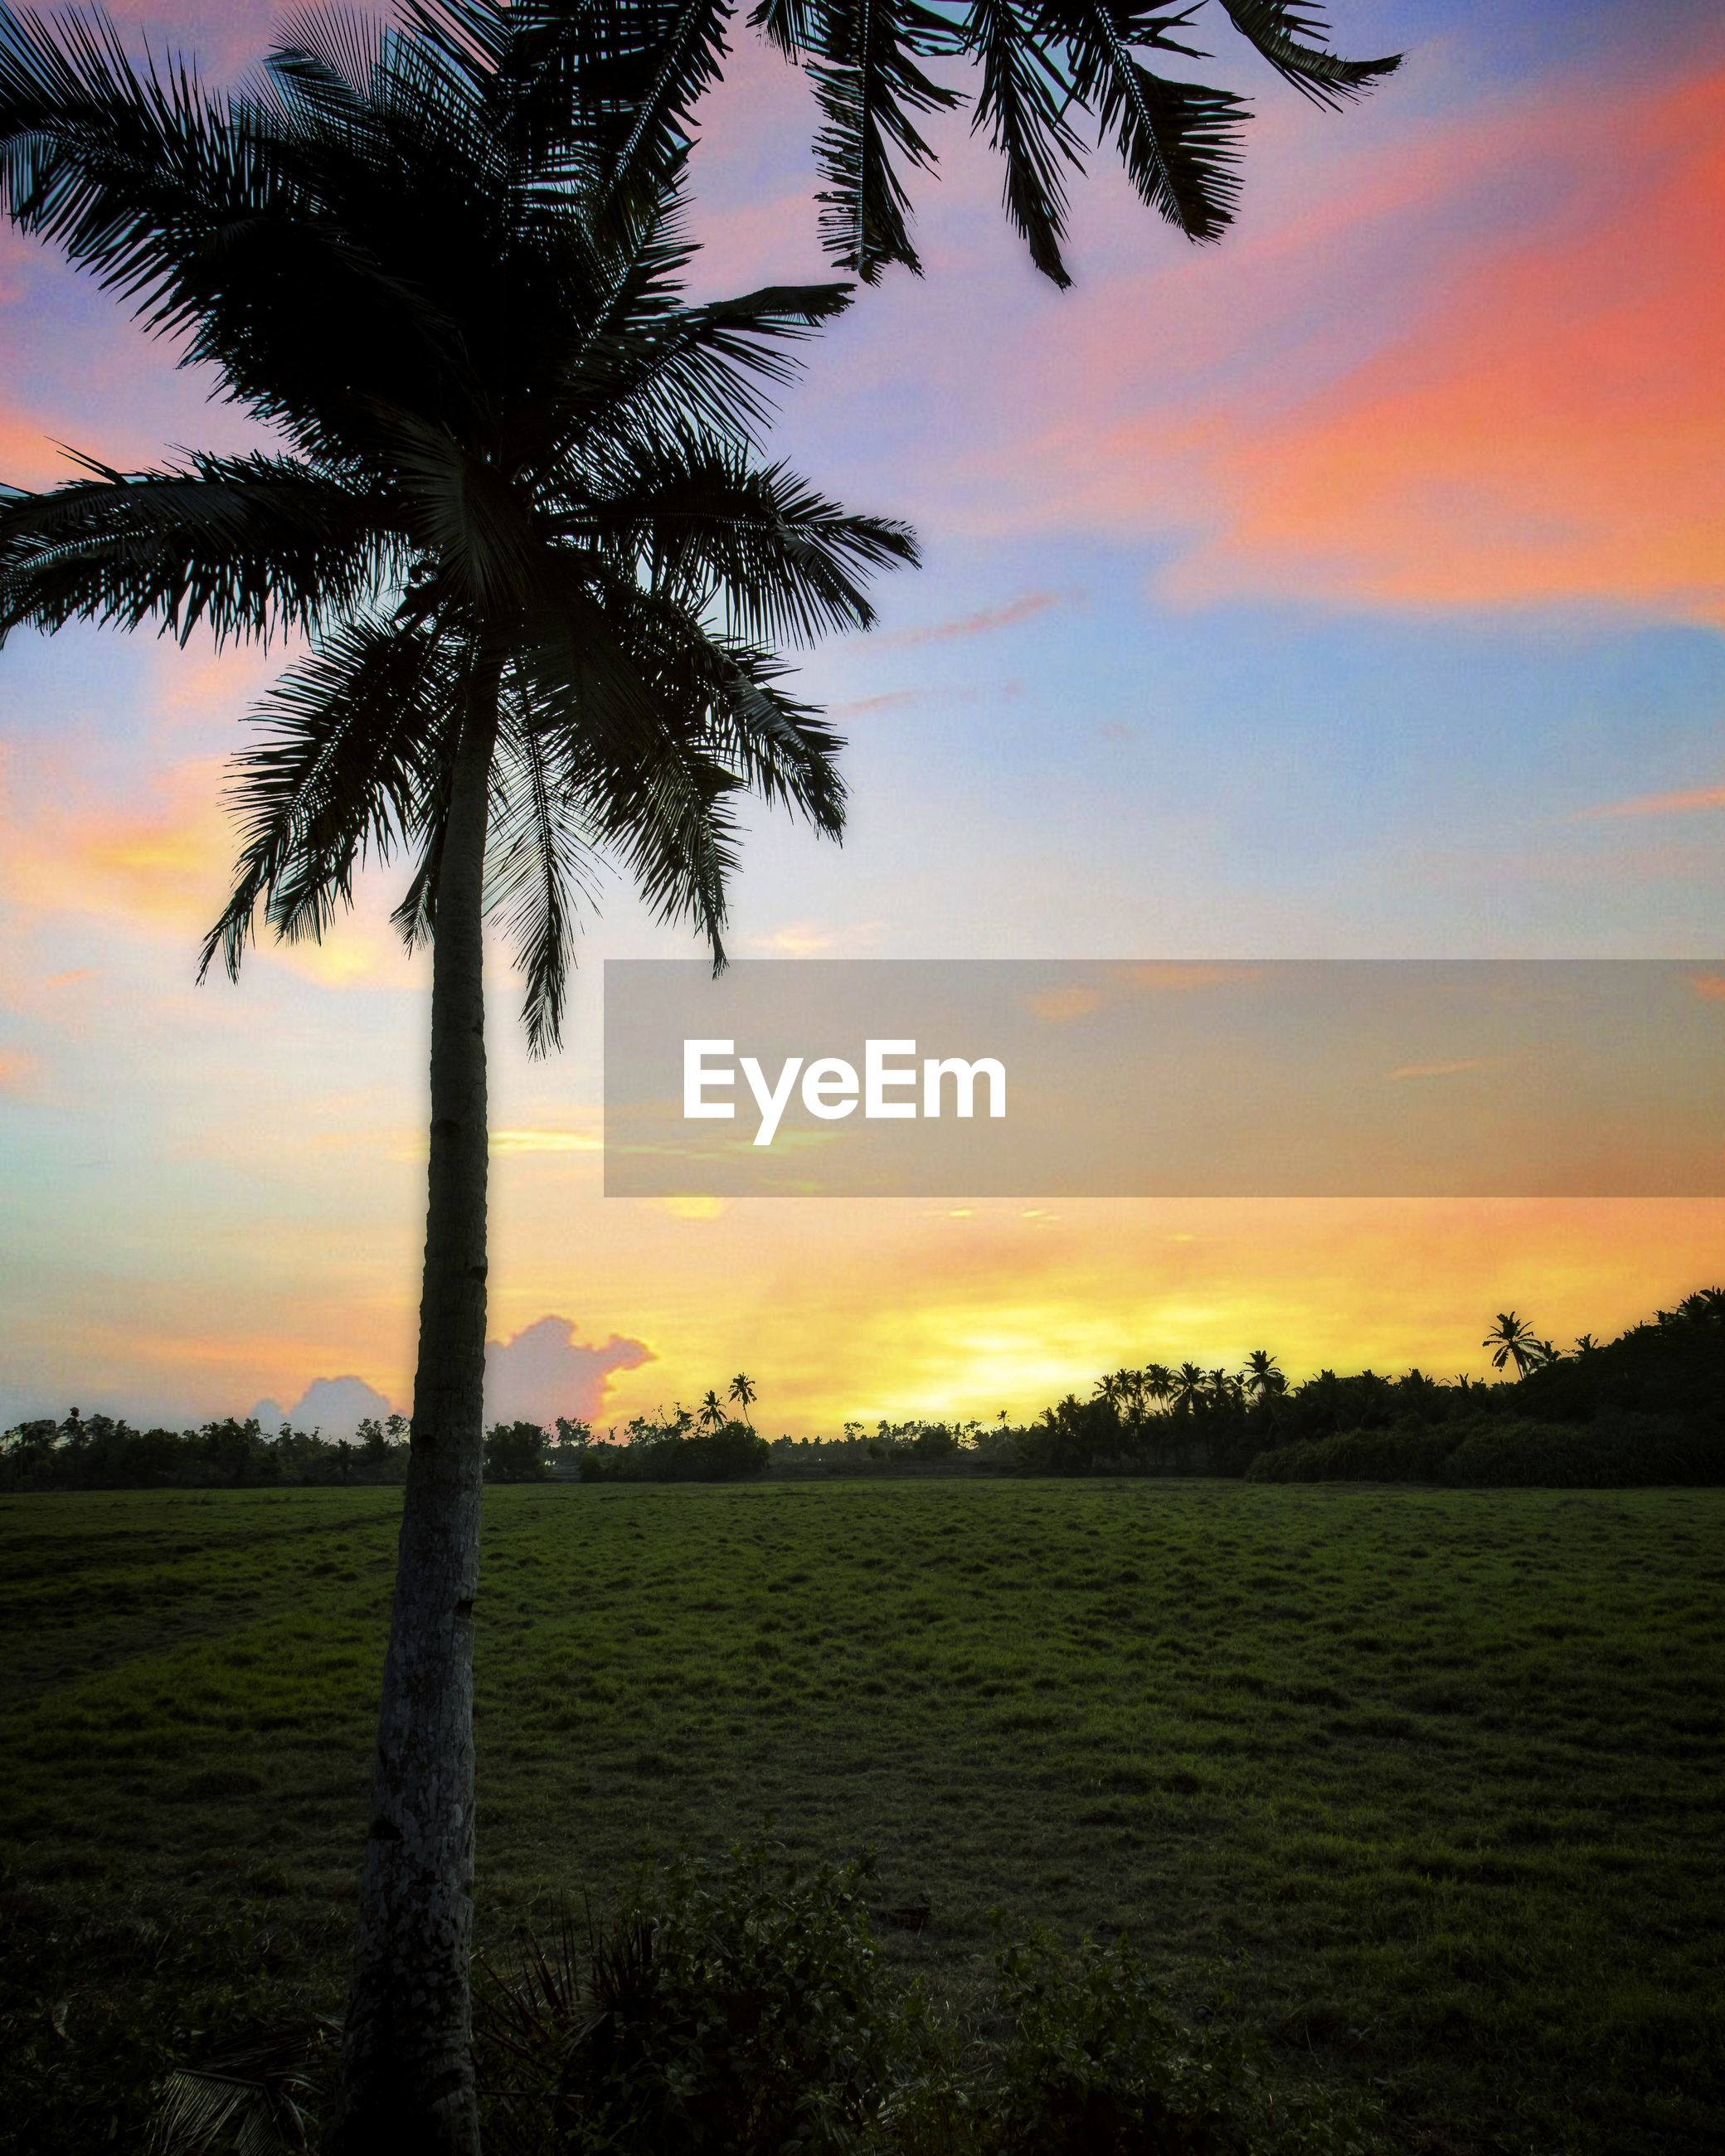 Silhouette palm tree on field against sky during sunset